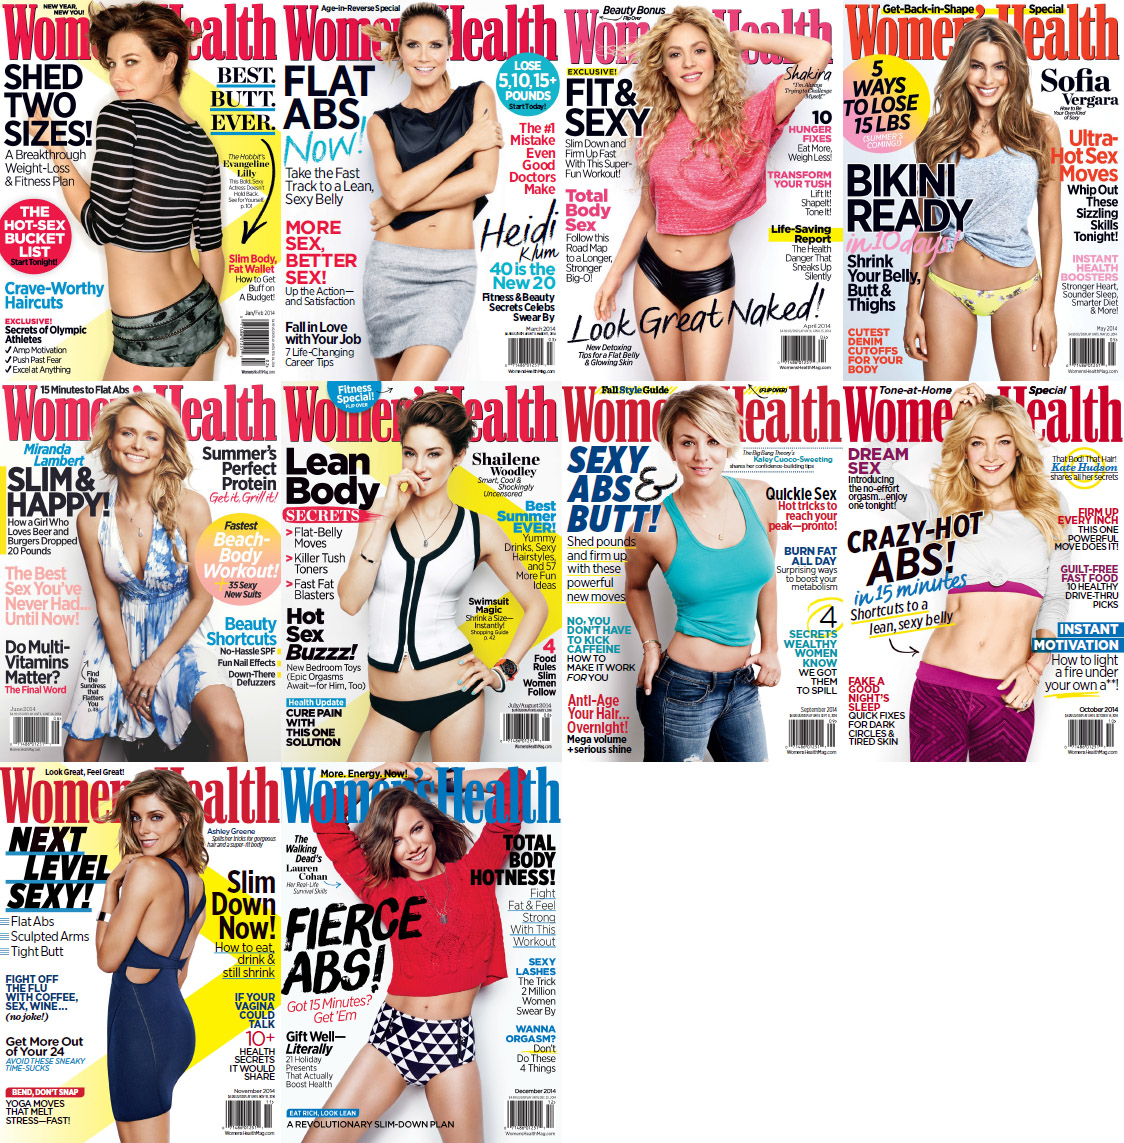 Women's Health USA Magazine - 2014 Full Year Issues Collection free download